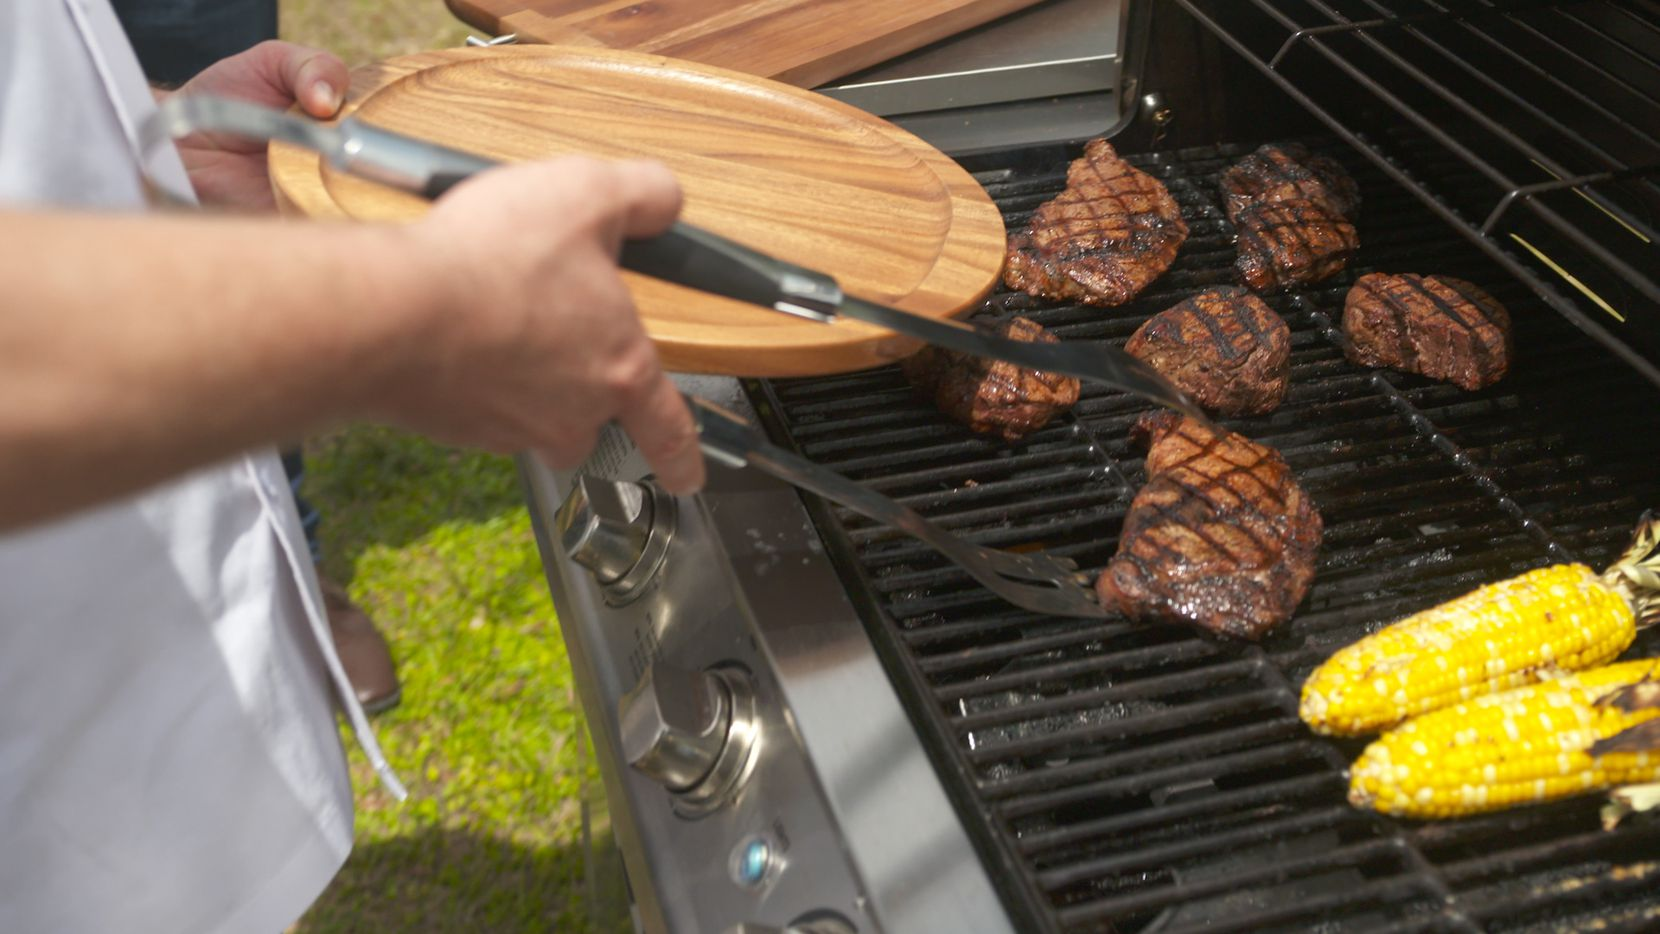 LongHorn Steakhouse is offering a social media  hotline  for quick grilling advice from grill masters this Memorial Day weekend.